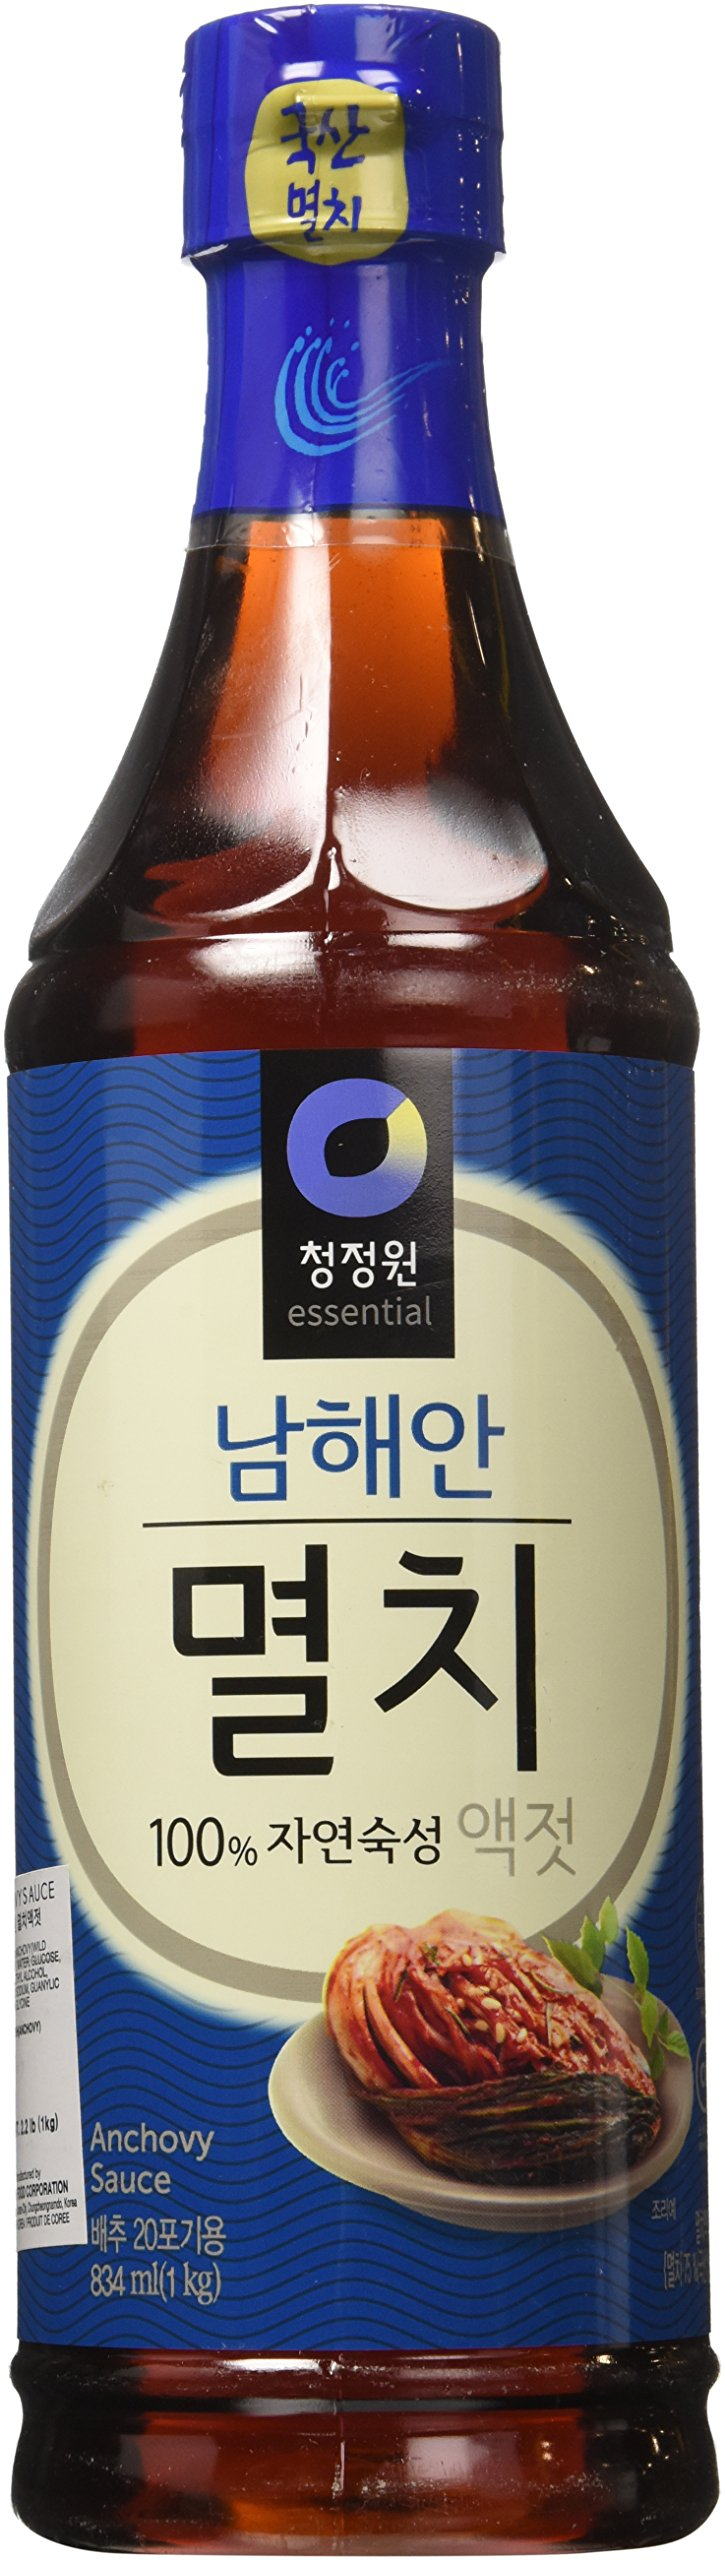 Anchovy Fish Sauce (2.2 Lb) By Chung-Jung-One